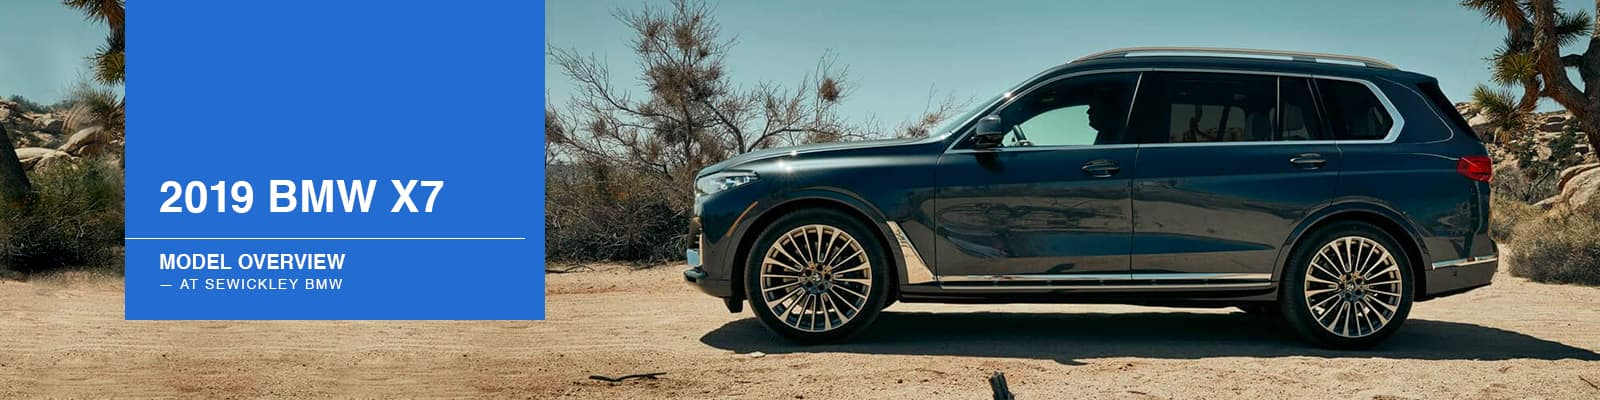 2019 BMW X7 Model Overview at Sewickley BMW